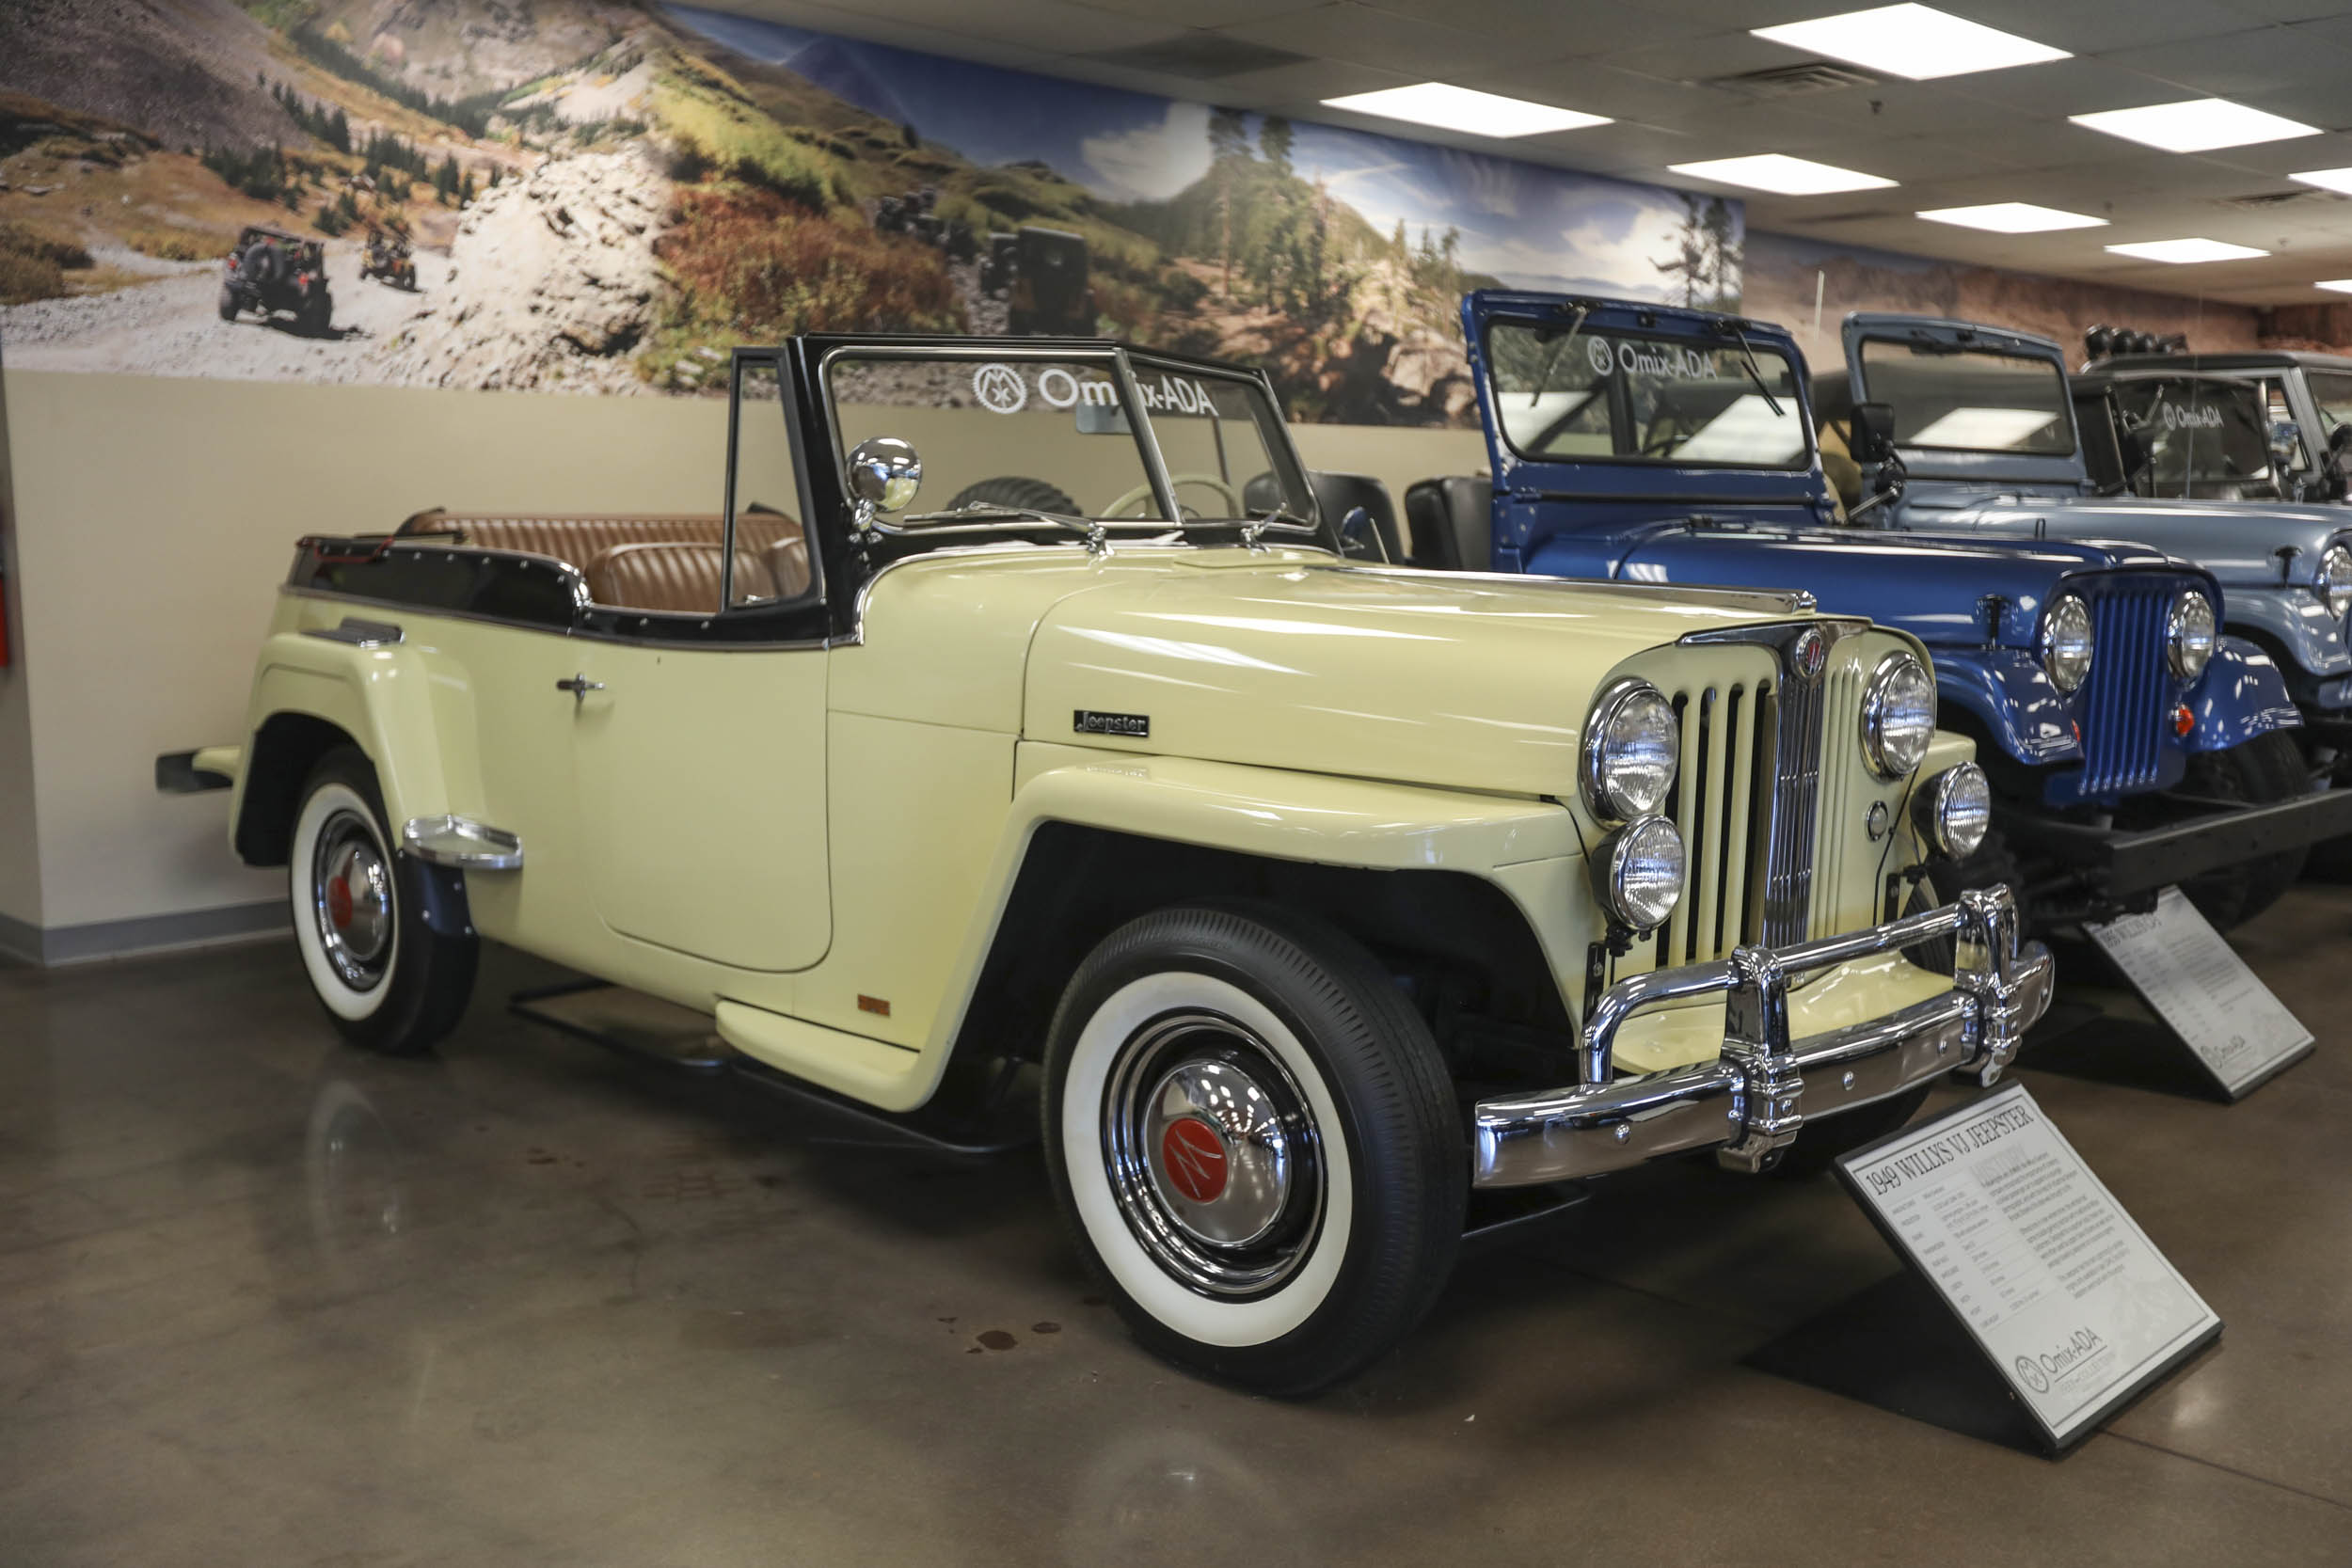 An early attempt by Willys to tap into the luxury market, the 1949 Jeepster featured an upscale interior with an engine-turned gauge panel.